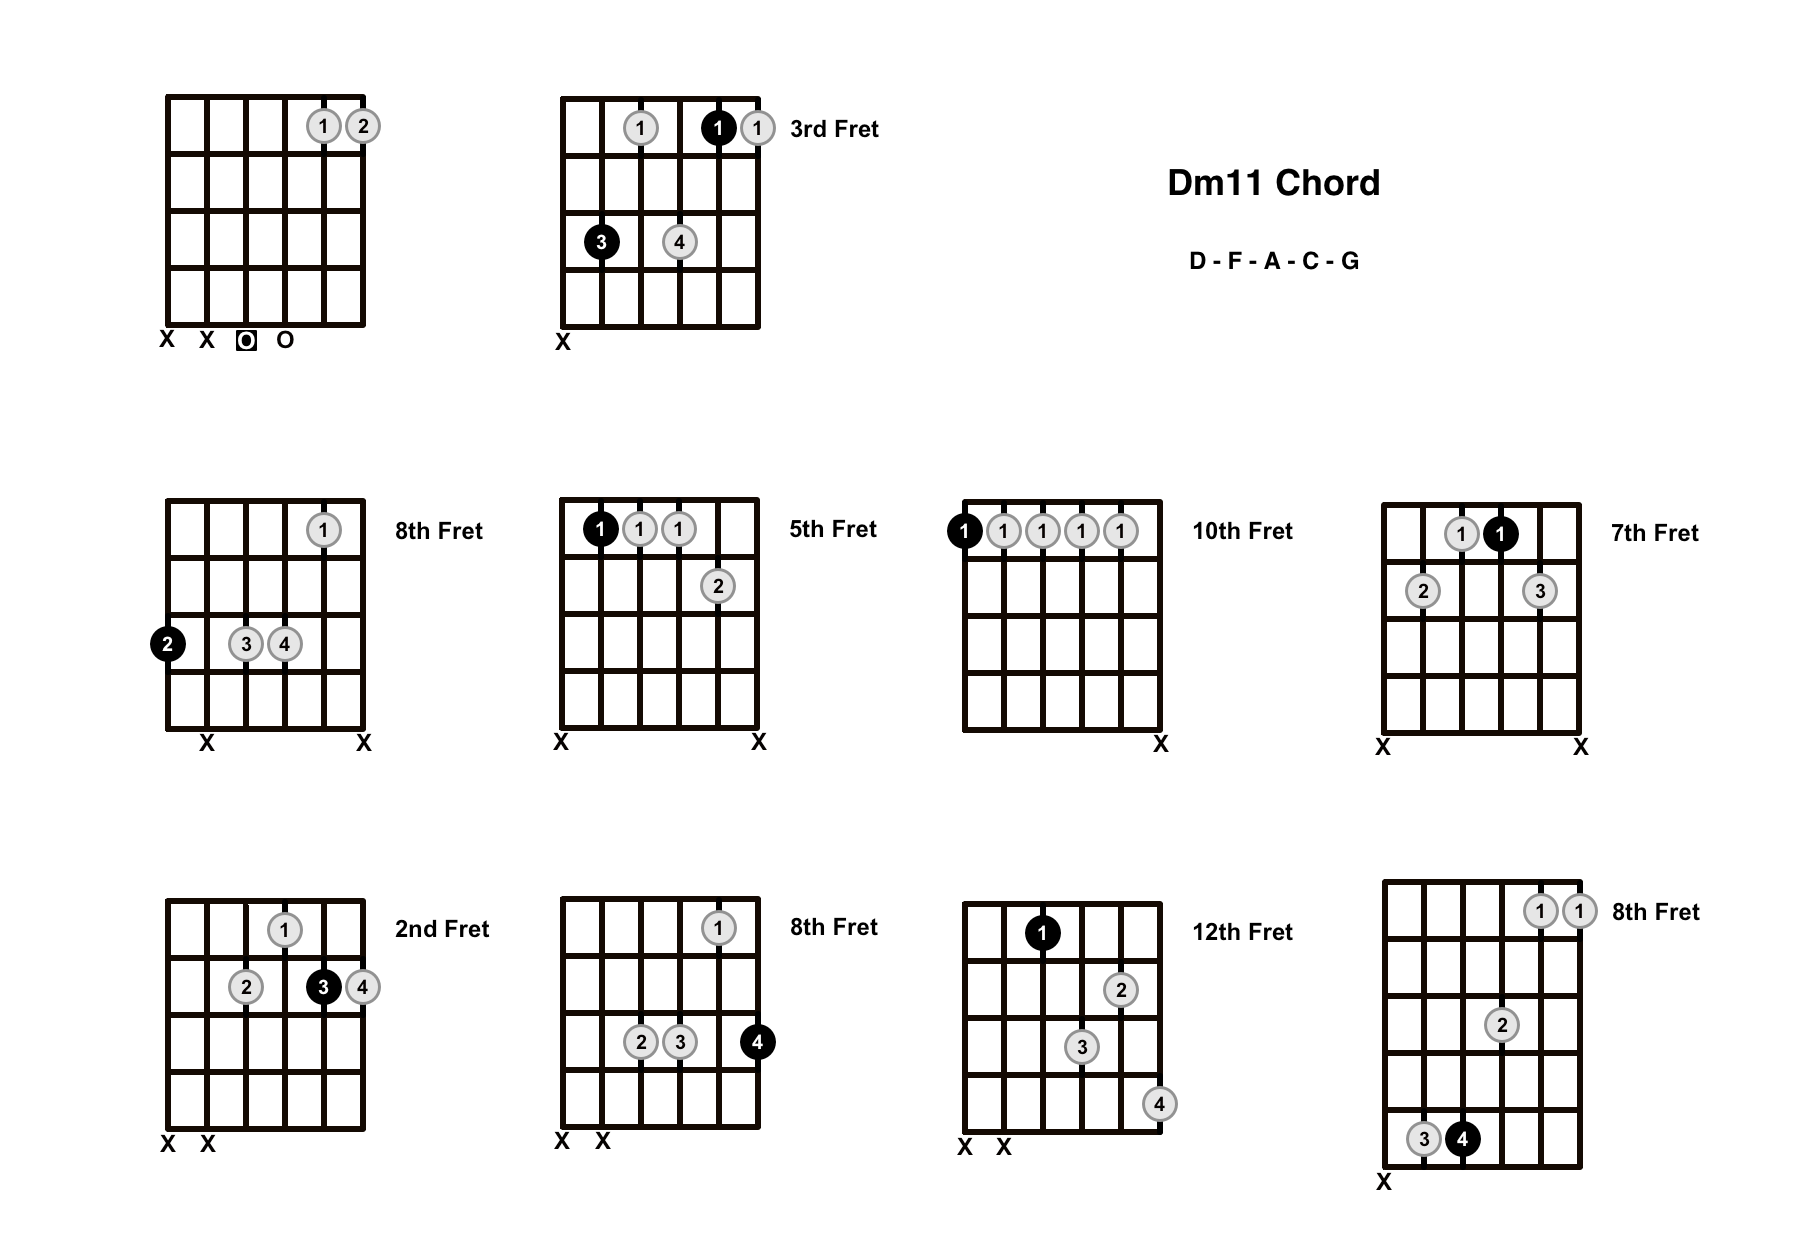 Dm11 Chord On The Guitar (D minor 11) – Diagrams, Finger Positions and Theory